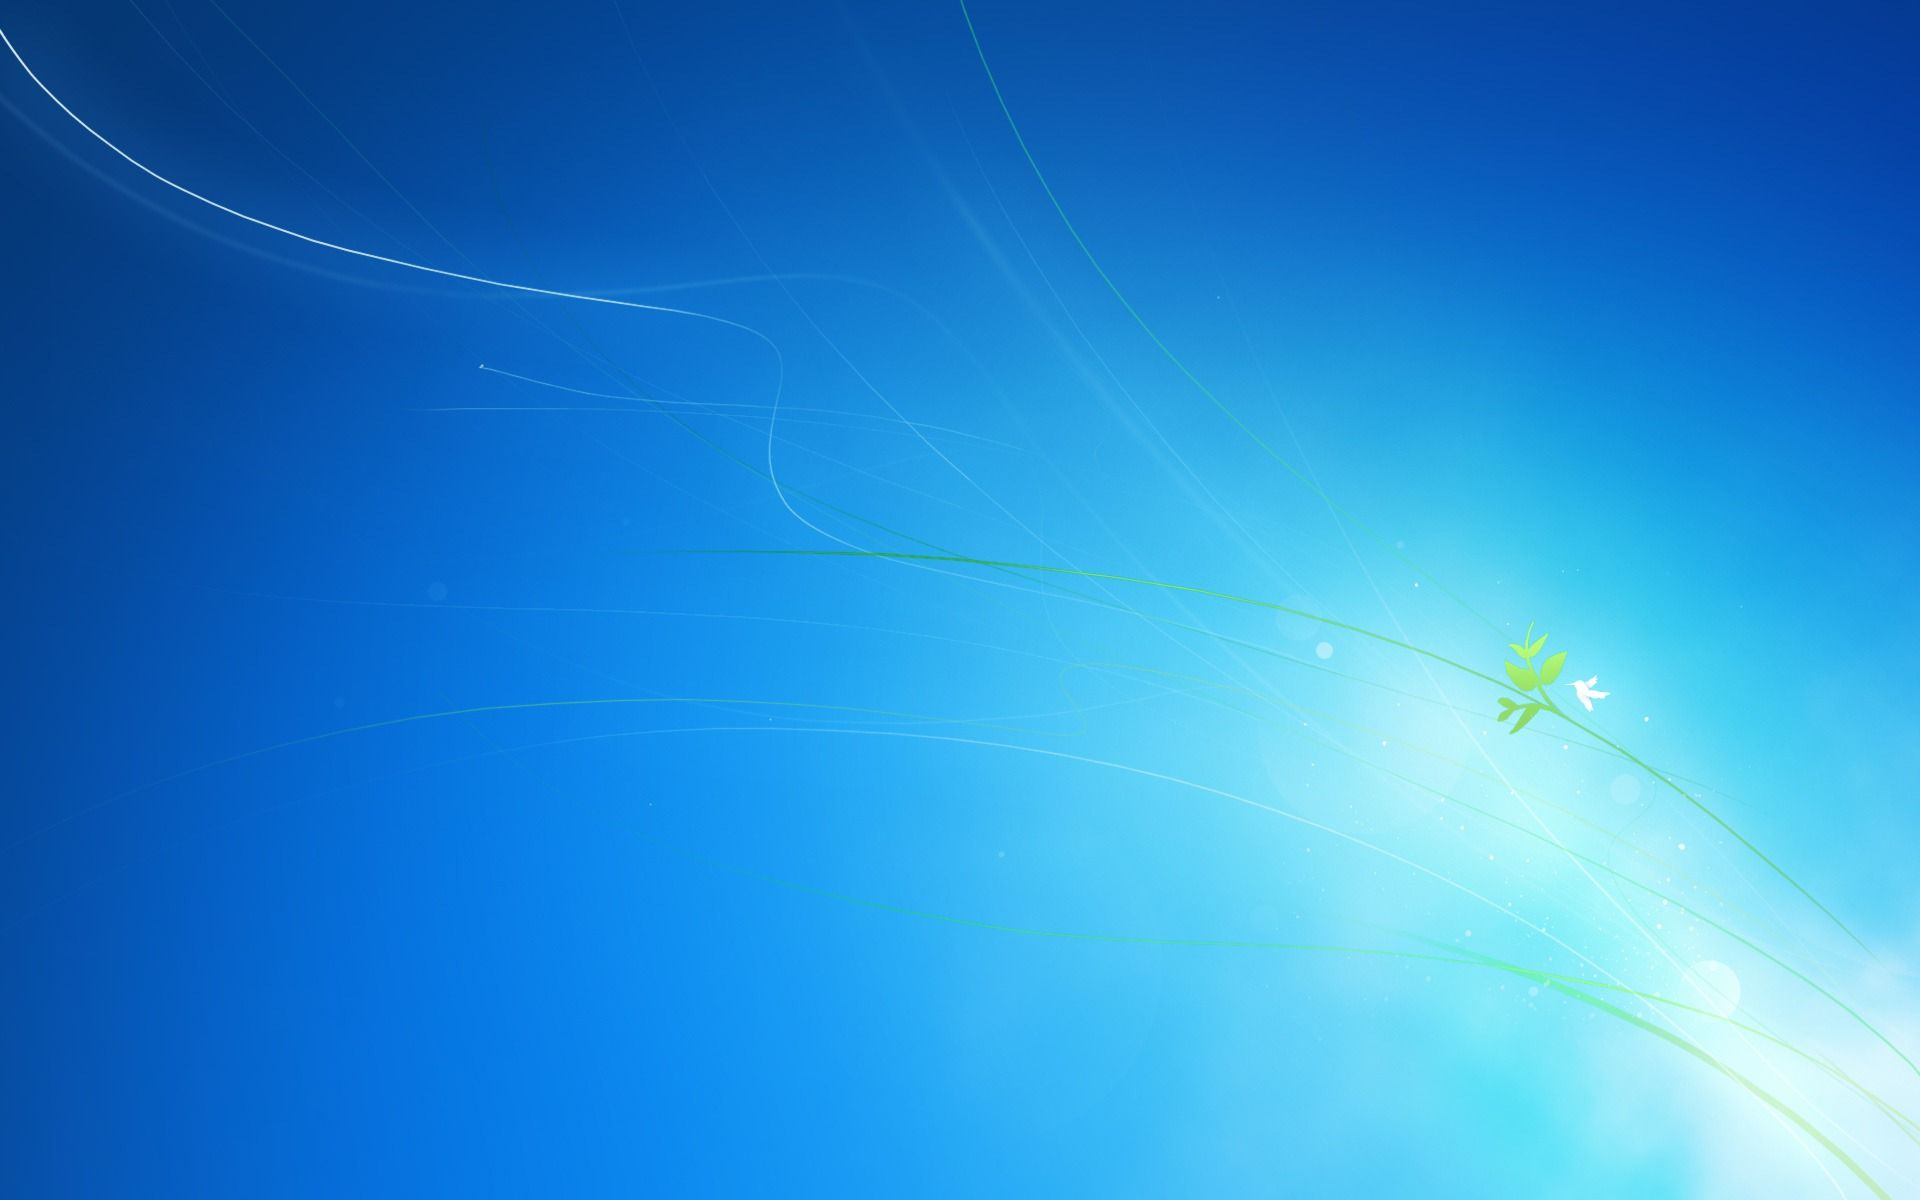 Windows 7 desktop backgrounds   SF Wallpaper 1920x1200